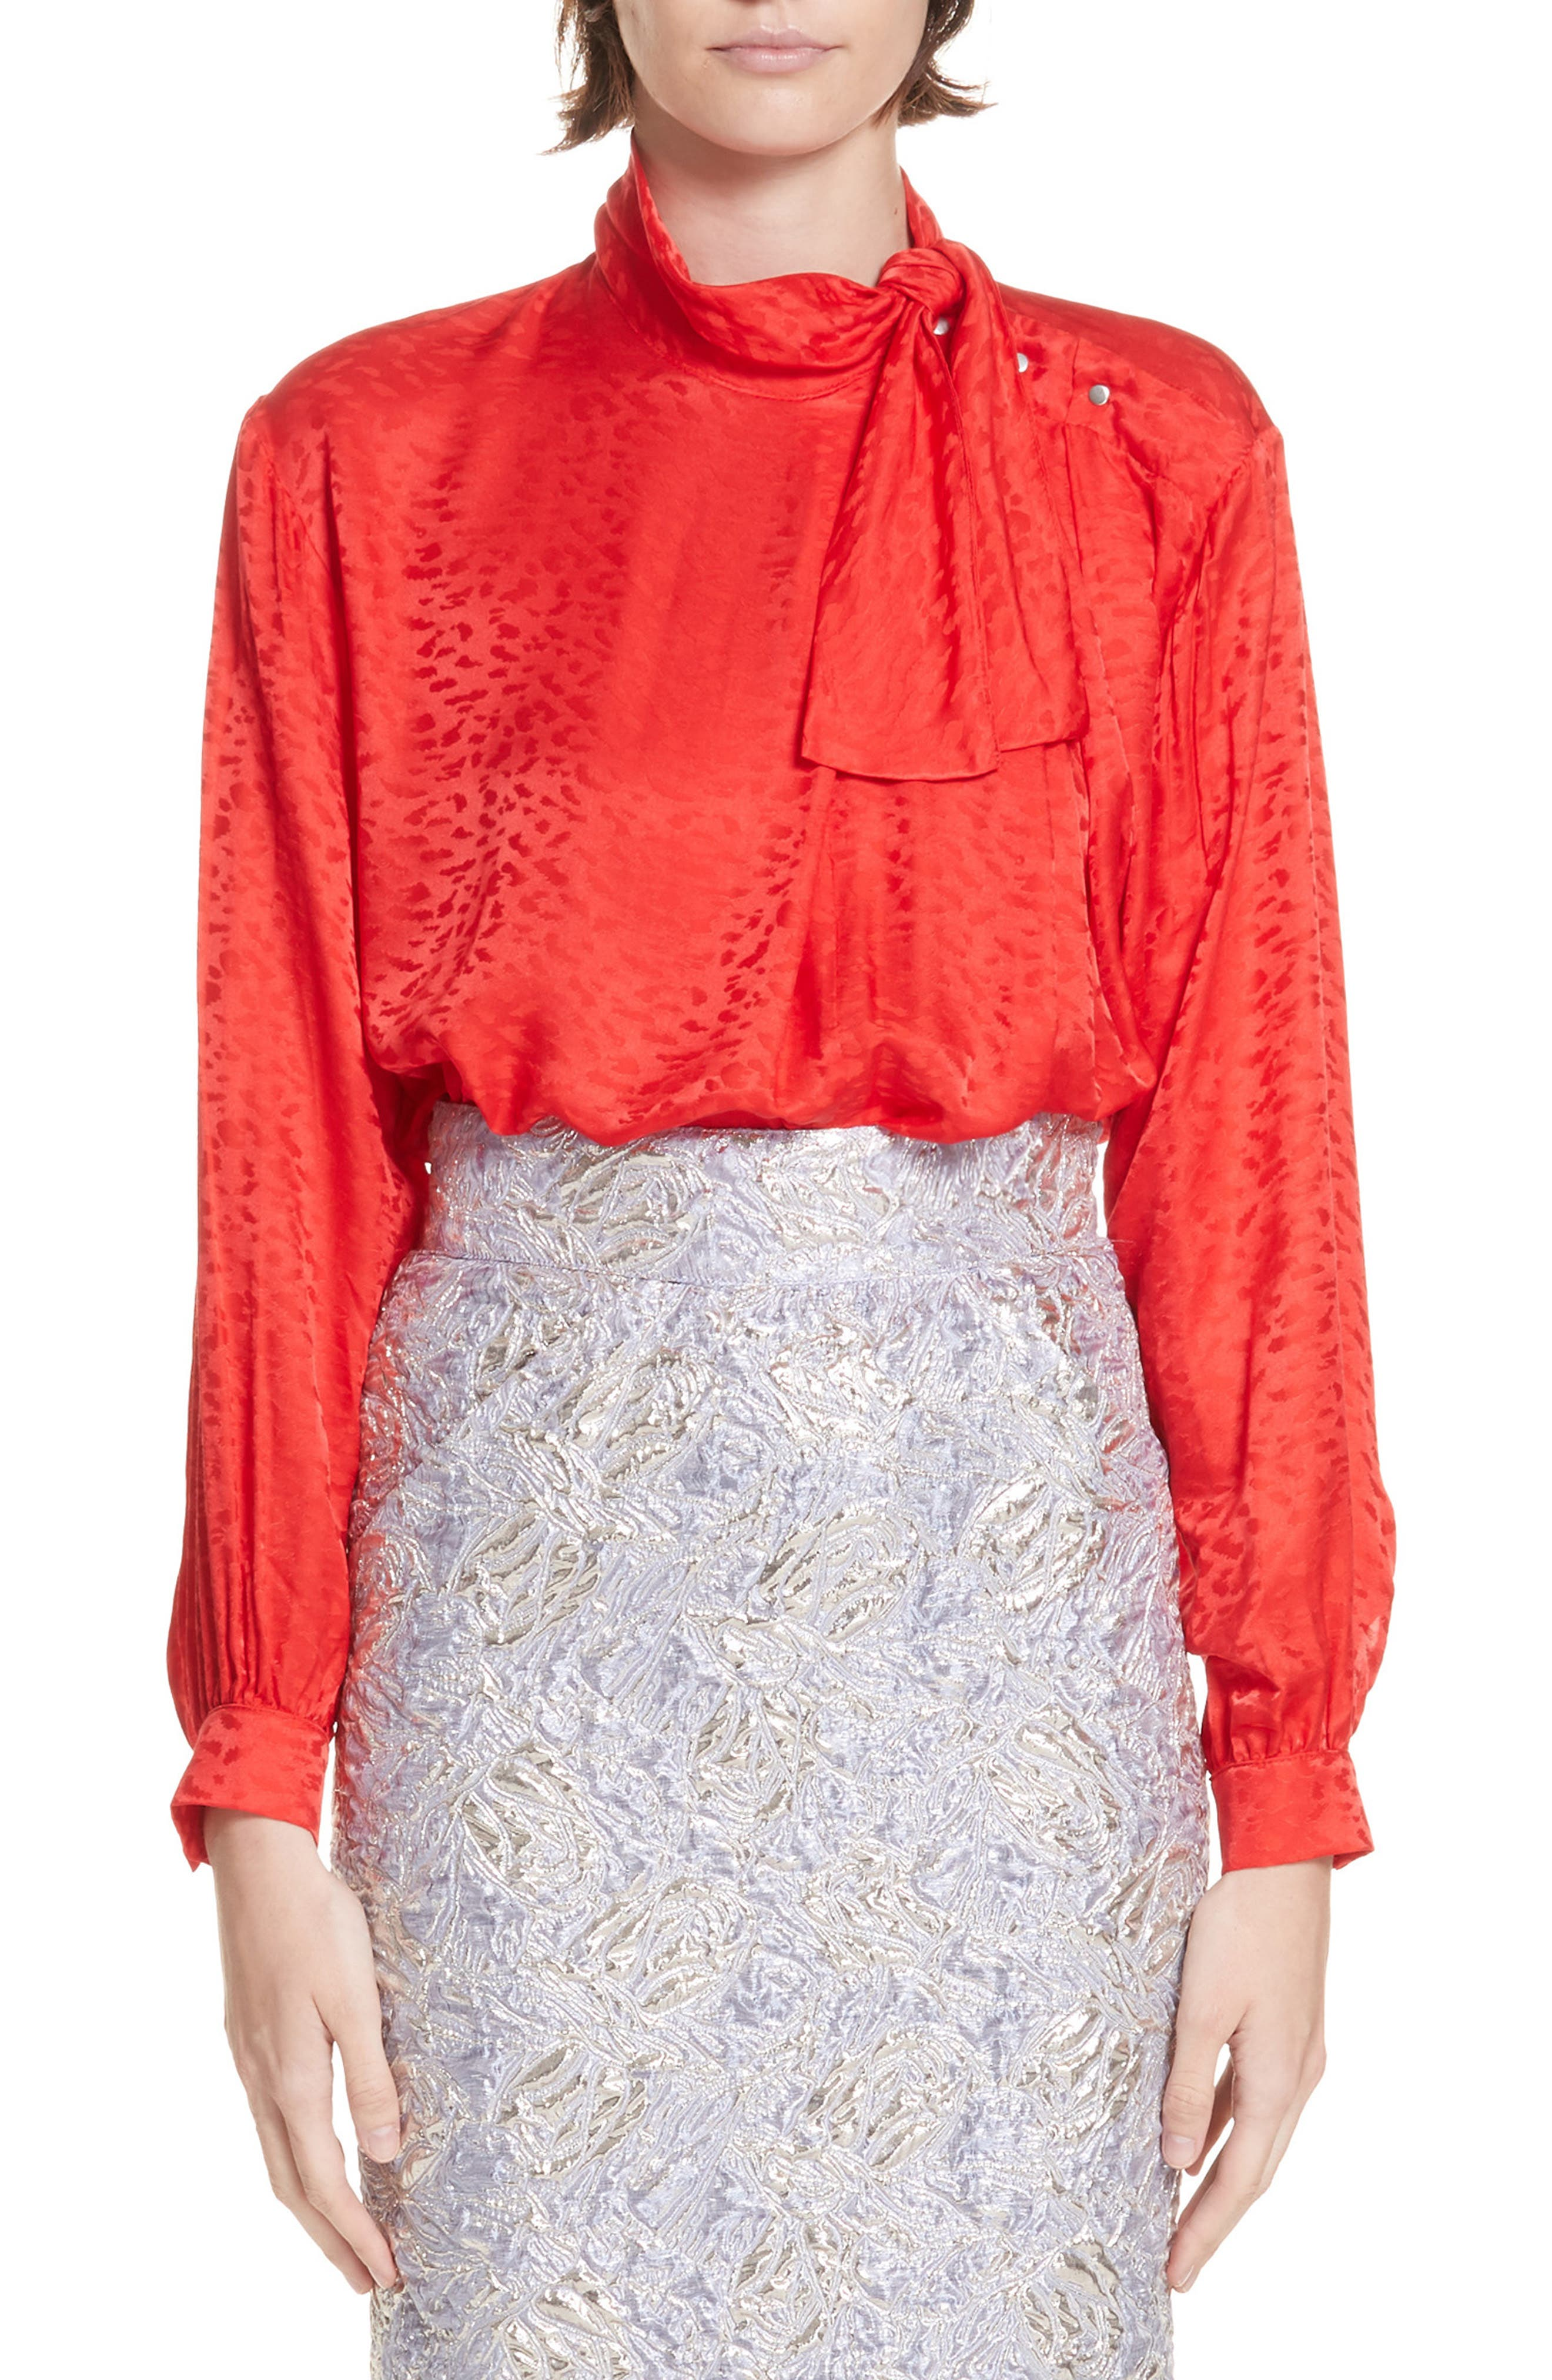 ROSEANNA Market Tie Neck Jacquard Blouse in Rouge